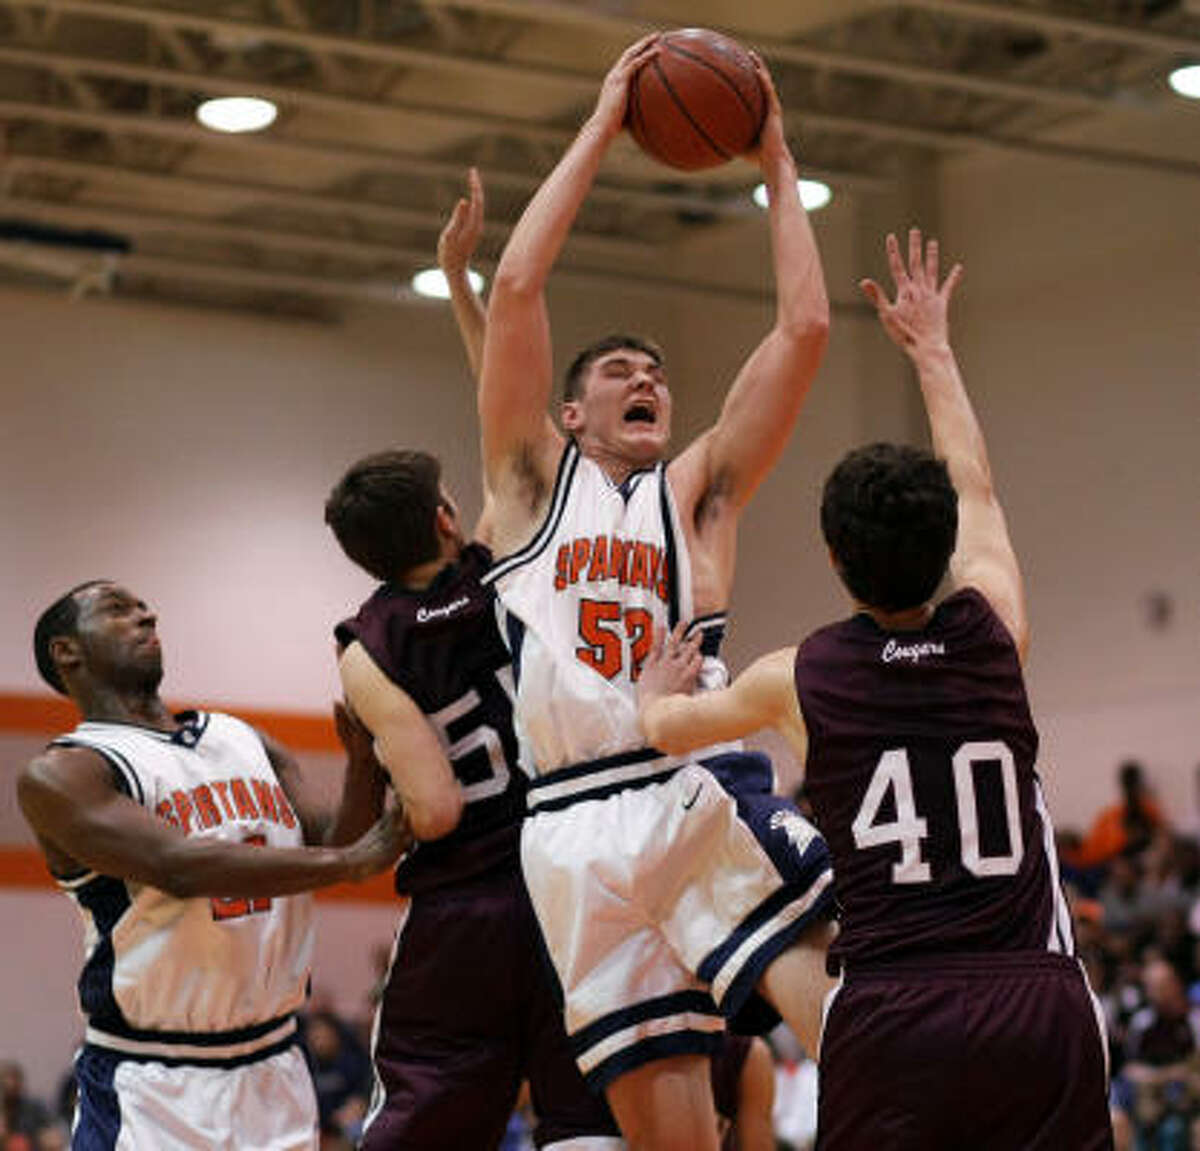 Seven Lake's Brendan Flower grabs a rebound over Cinco Ranch's Thomas Donnellty (40).